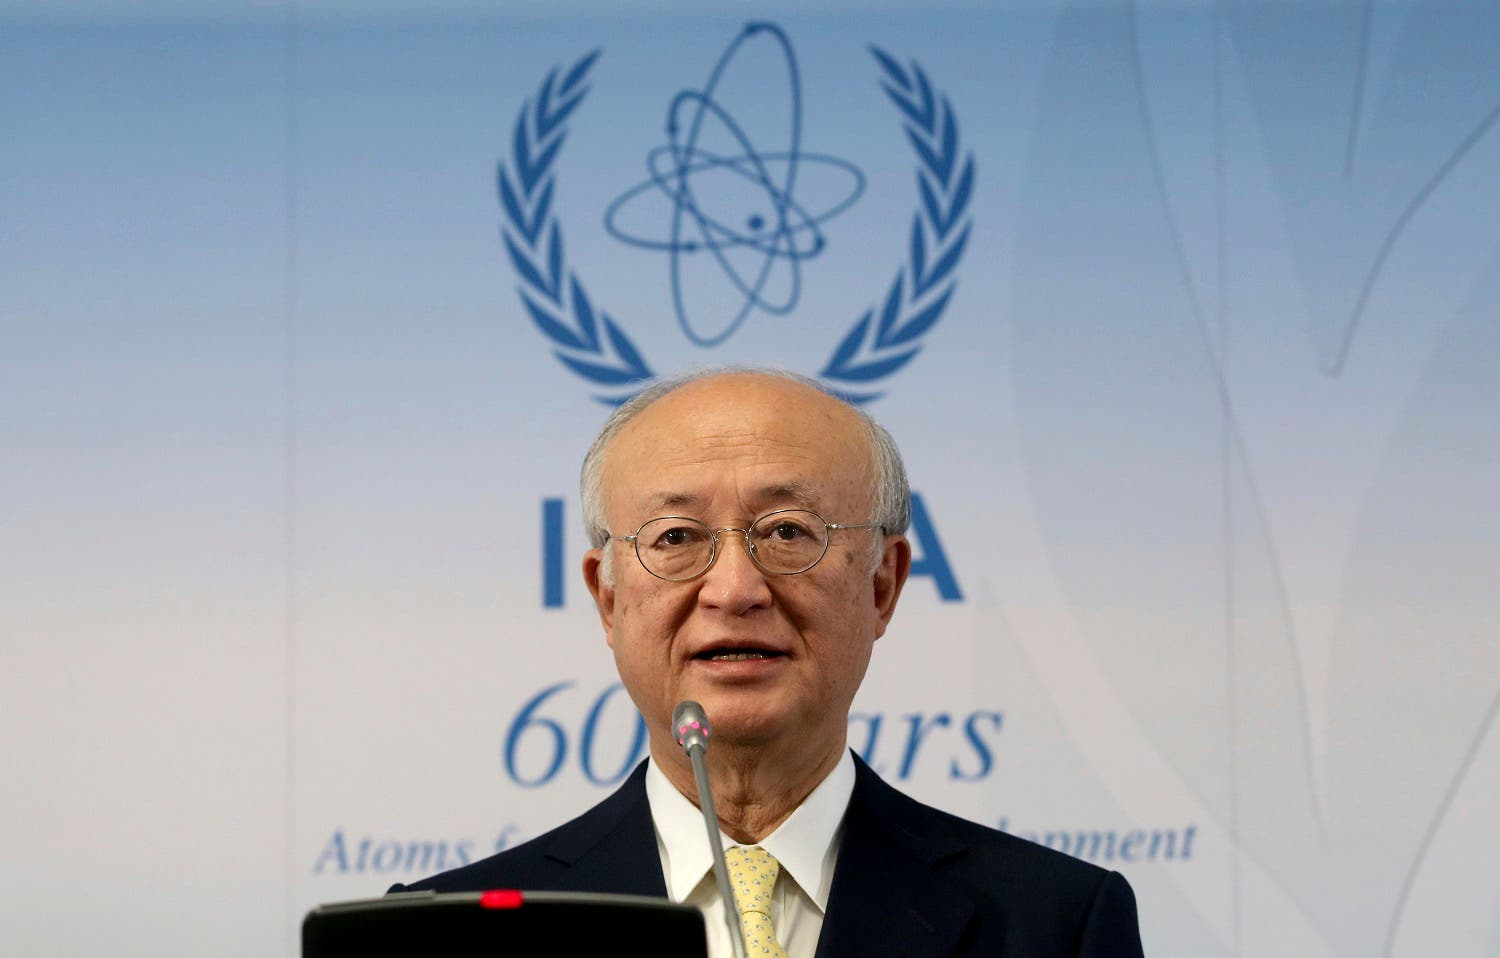 Director General of IAEA, Yukiya Amano of Japan, during a news conference in Vienna, on Nov. 23, 2017. (AP)